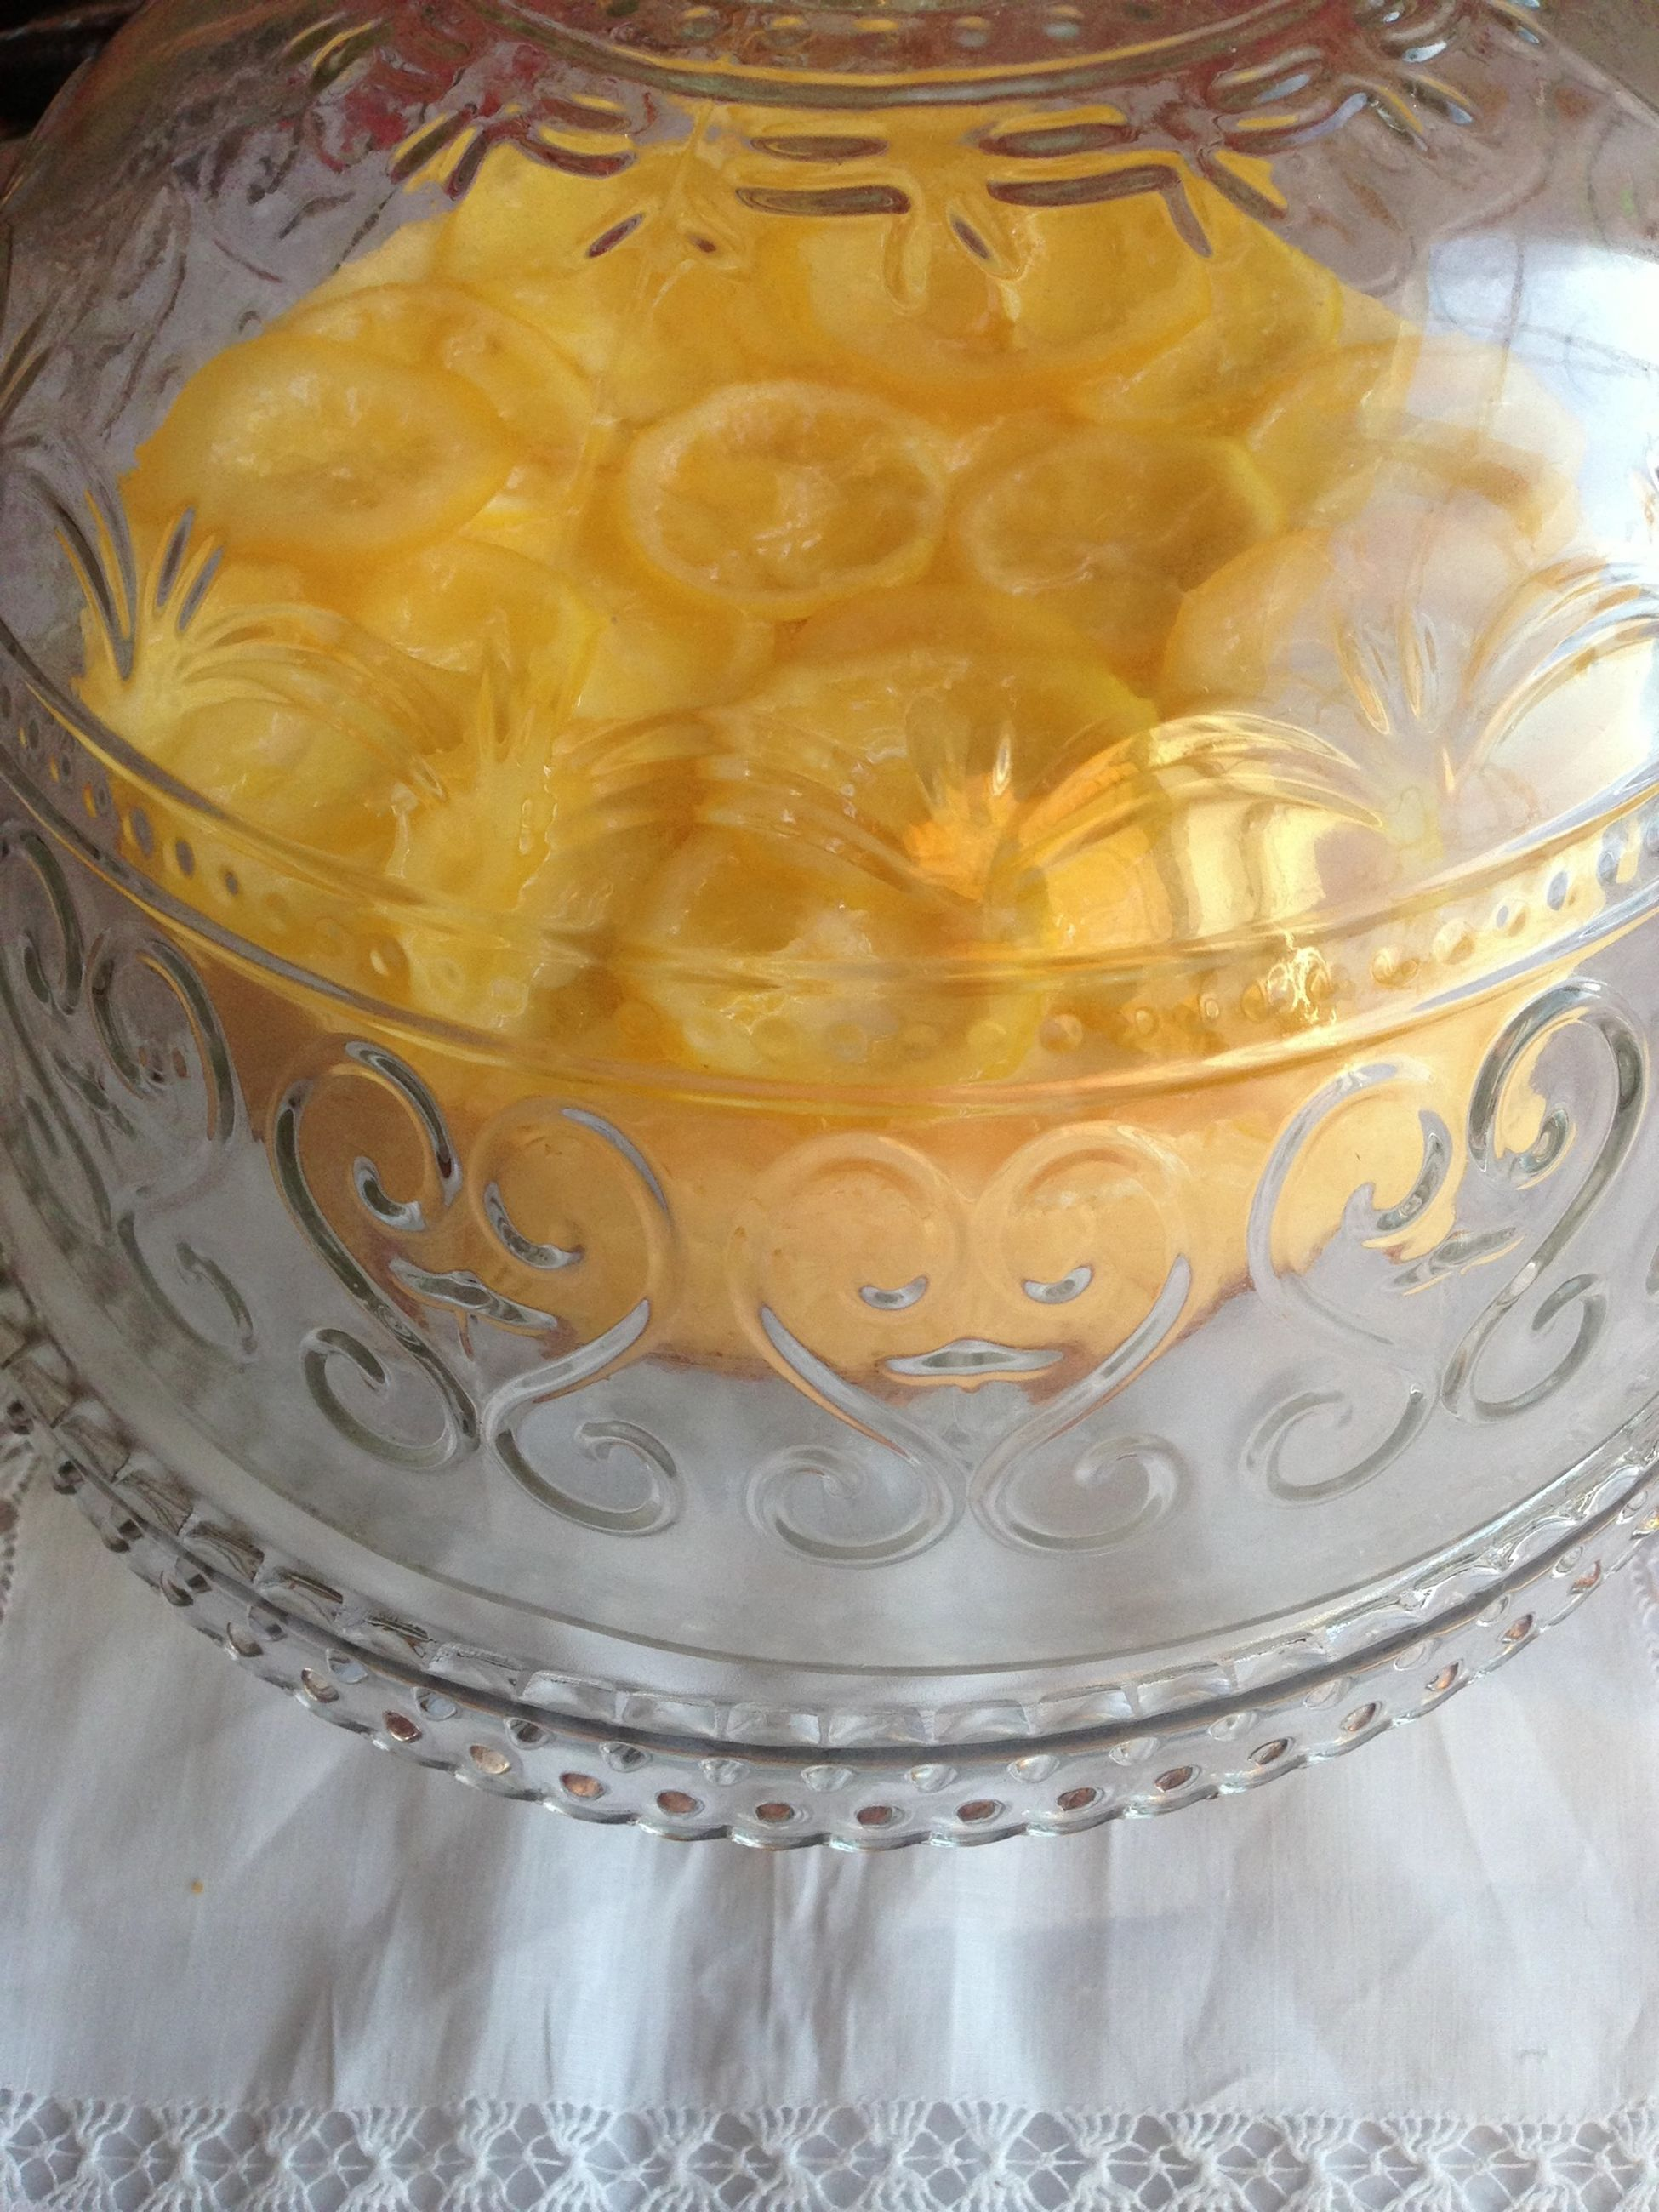 indoors, close-up, art and craft, pattern, art, creativity, design, glass - material, ornate, no people, yellow, gold colored, reflection, water, transparent, decoration, floral pattern, still life, spirituality, circle